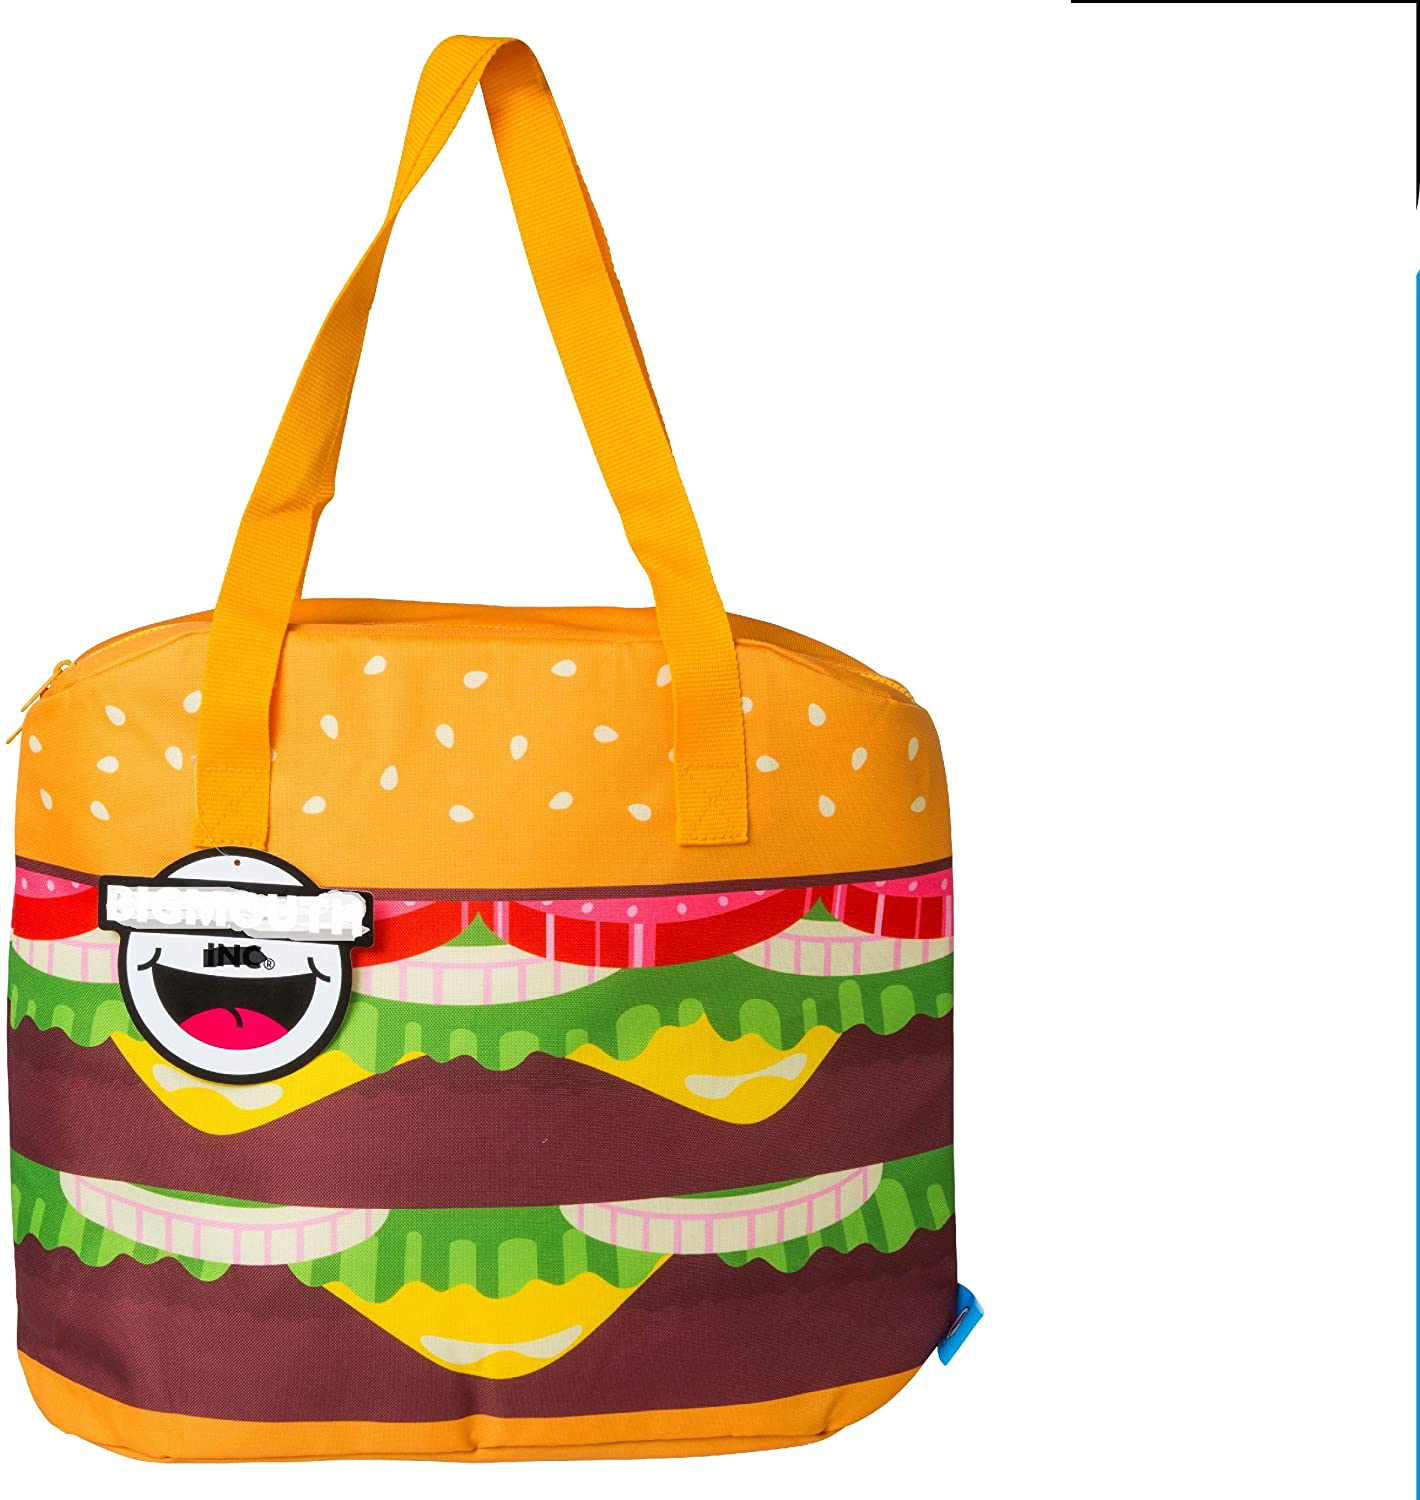 BigMouth Inc. Giant Cheeseburger Cooler Bag - EVA-Insulated Tote That Keeps Drinks Cool, Easy to Carry, Wide Opening for Easy Packing, Can Fit up to 12 Standard Cans or Bottles, Makes a Great Gift